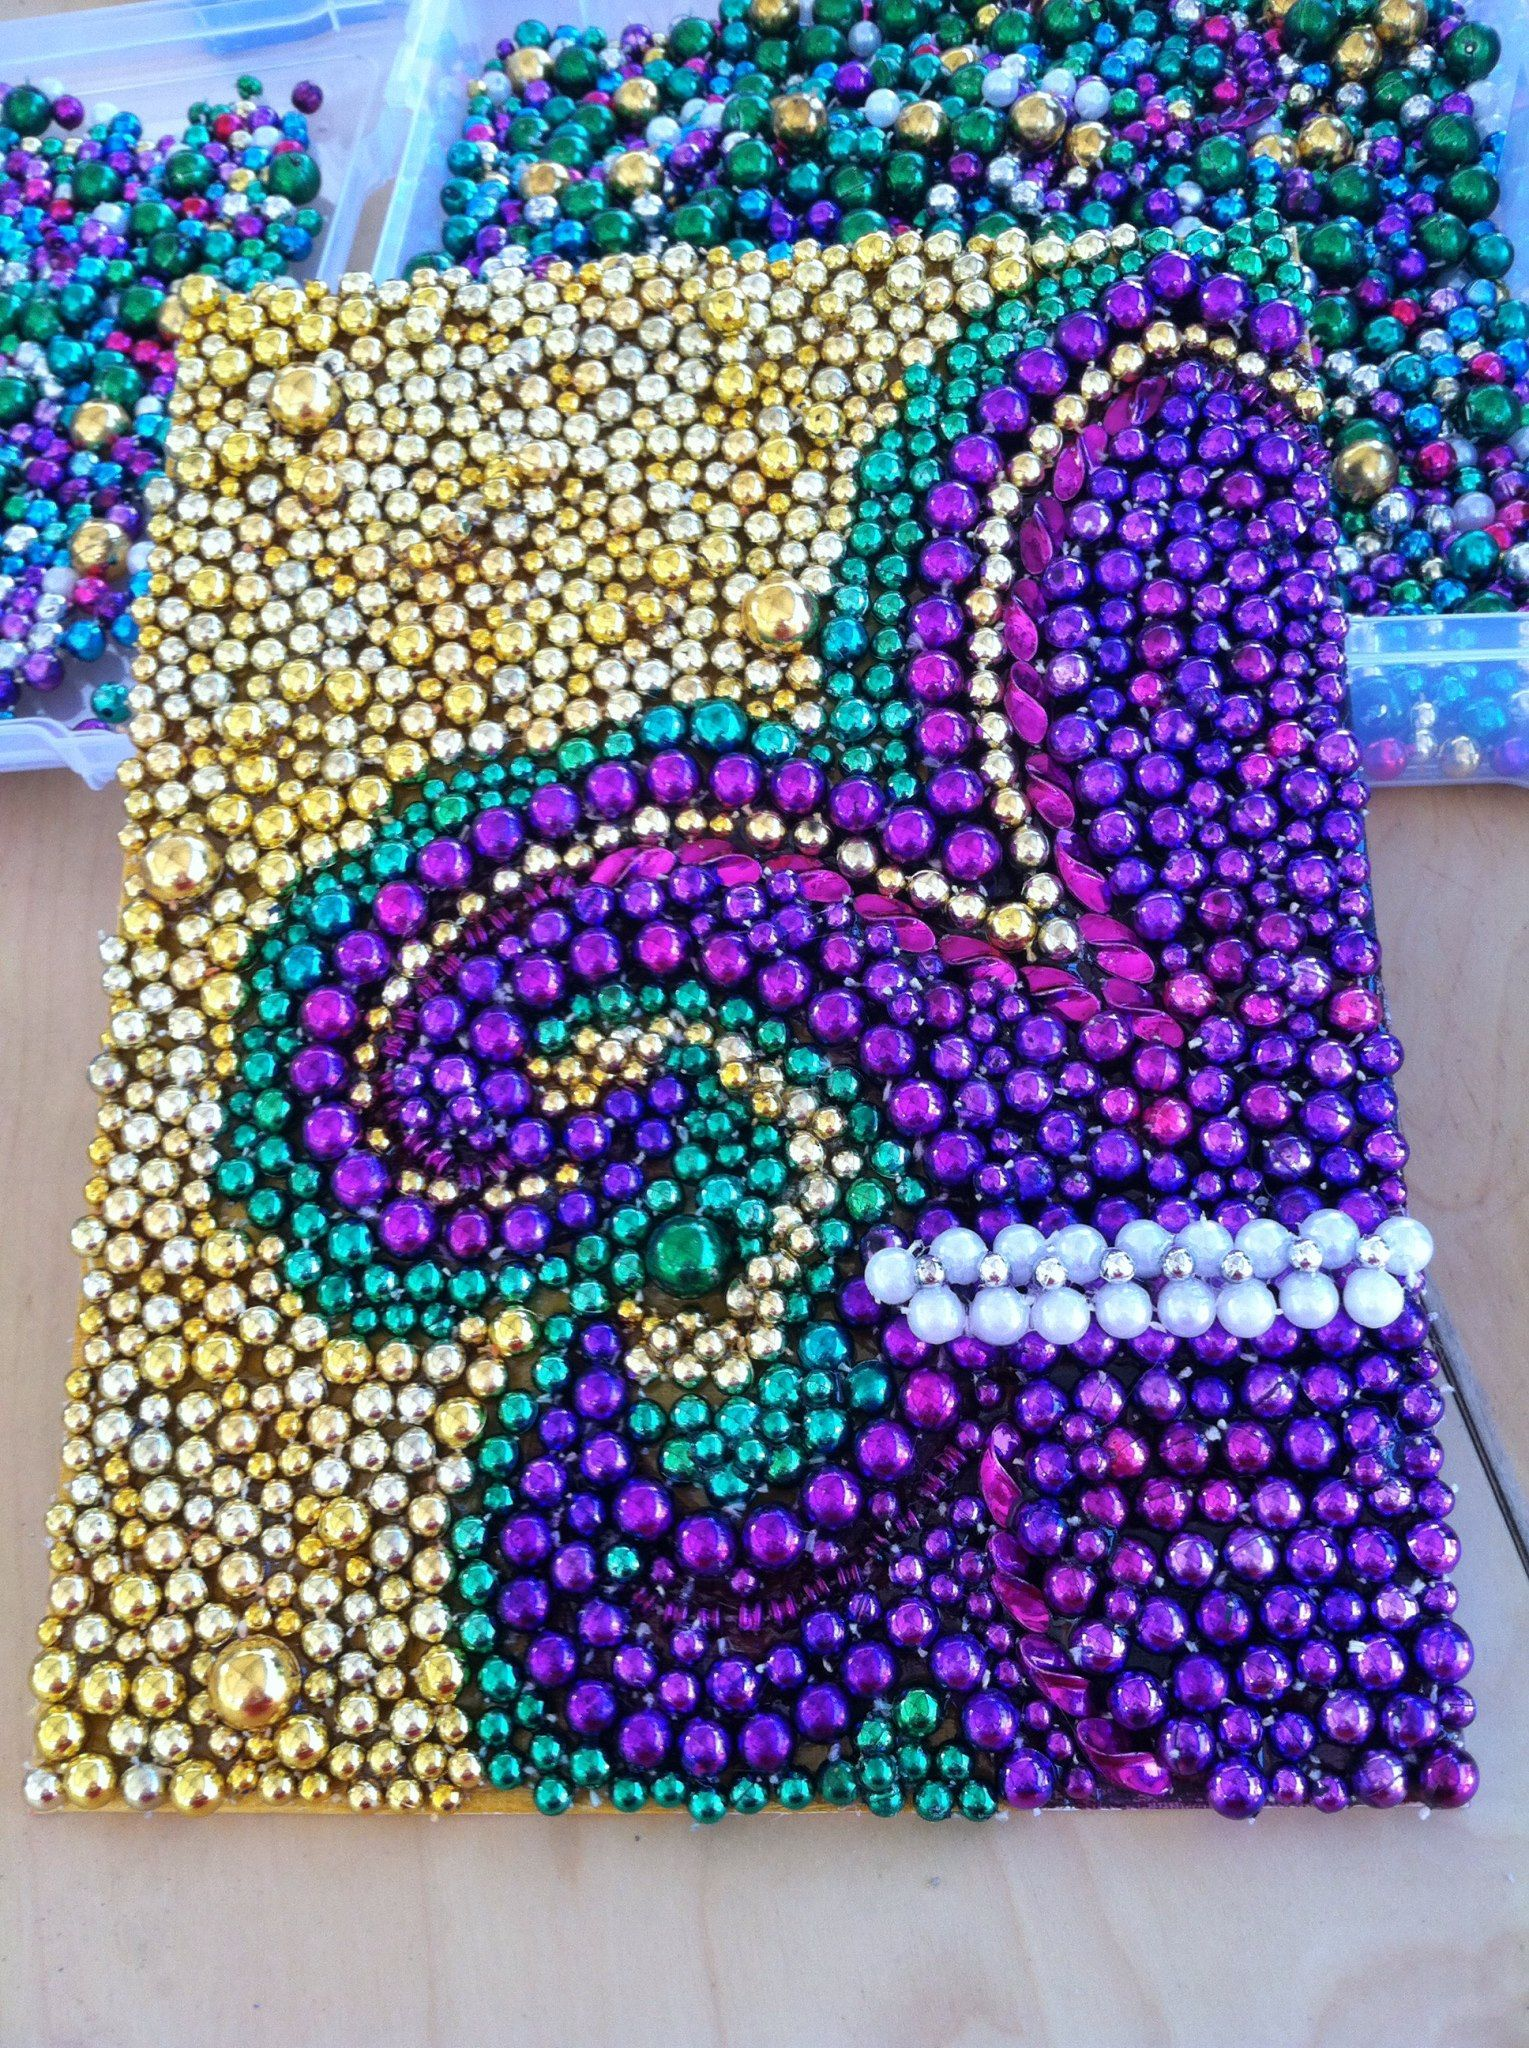 Beads glued to a canvas in a fleur de lis would be cute to do in something i will do after finally visiting new orleans for all the mardi gras beads i savedrdi gras bead fleur de lis glued on canvas board amipublicfo Images